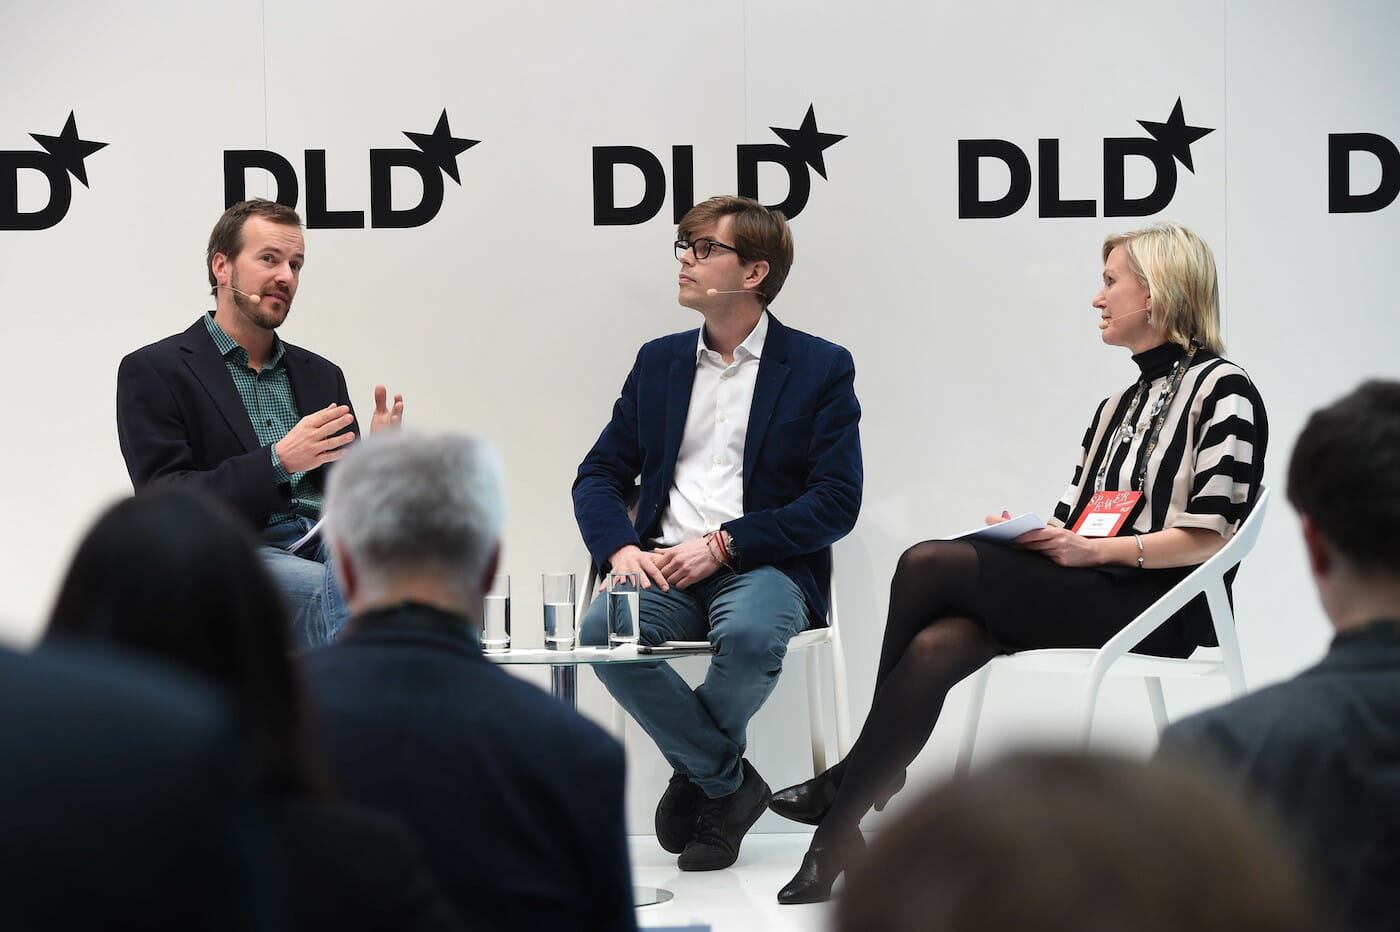 Taavet Hinrikus (Transferwise) and Matthias Ljungman (Atomico) in conversation with Ann Mettler (European Political Strategy Centre)